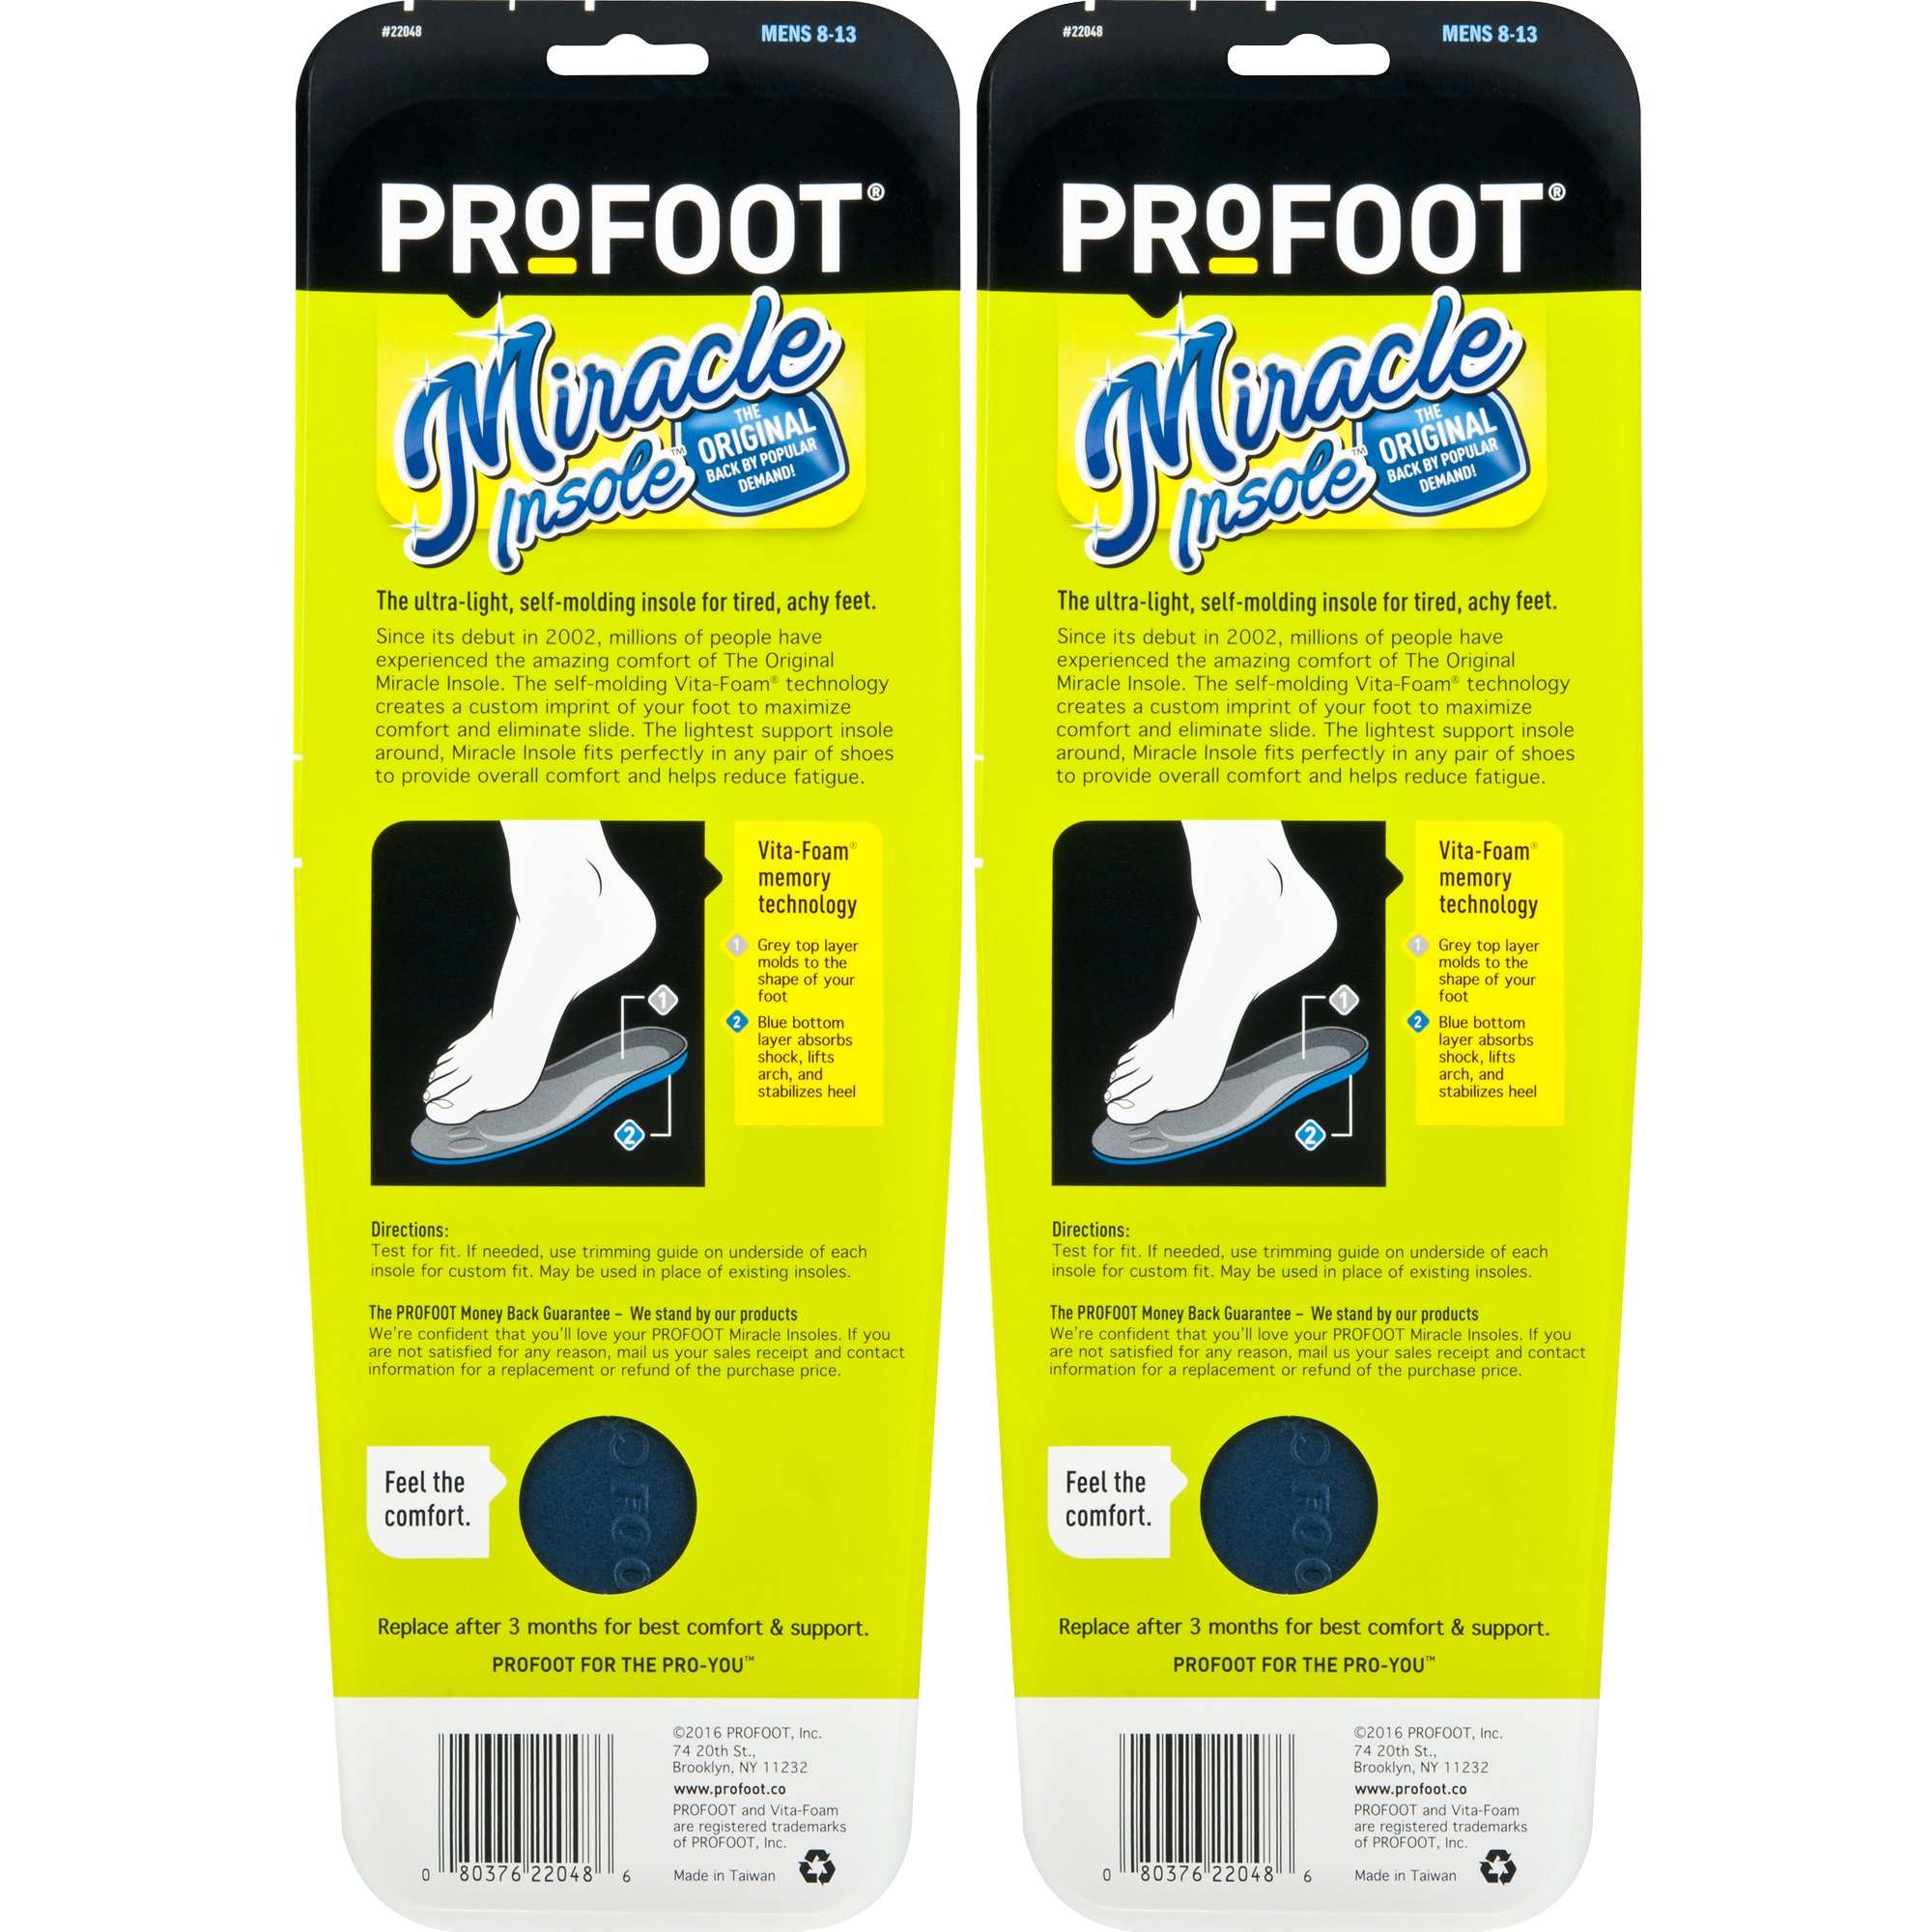 PROFOOT Original Miracle Insole, Men's 8-13, 2 Pair, 2-Layer Lightweight Insole with Memory-Foam Technology for Relief from Sore Feet and Aching Heels from Walking, Standing, Hiking by Profoot (Image #2)